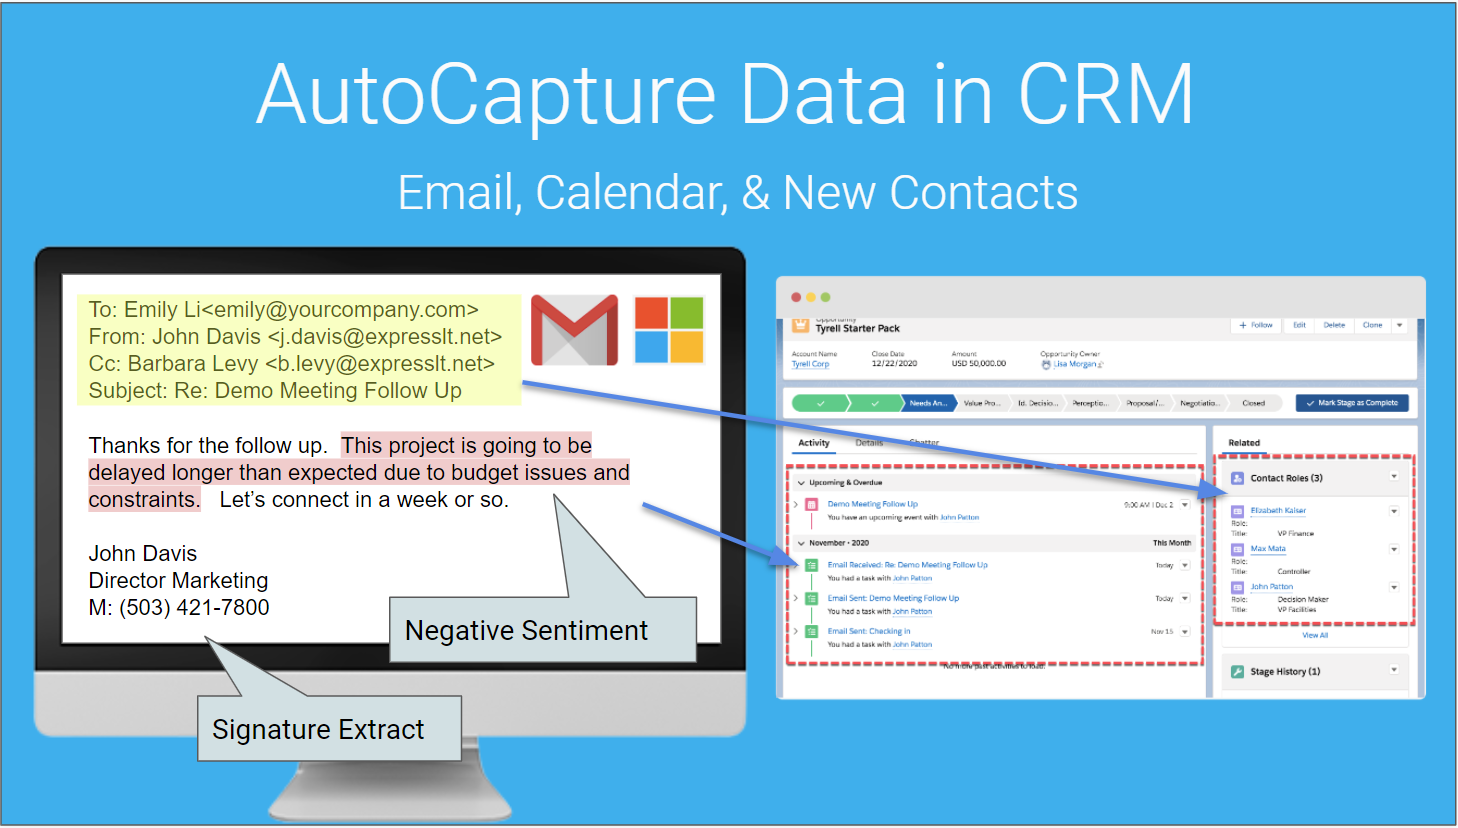 Automated activity capture of email recipients, content sentiment analysis, signature extraction - all delivered to your CRM (automatically).